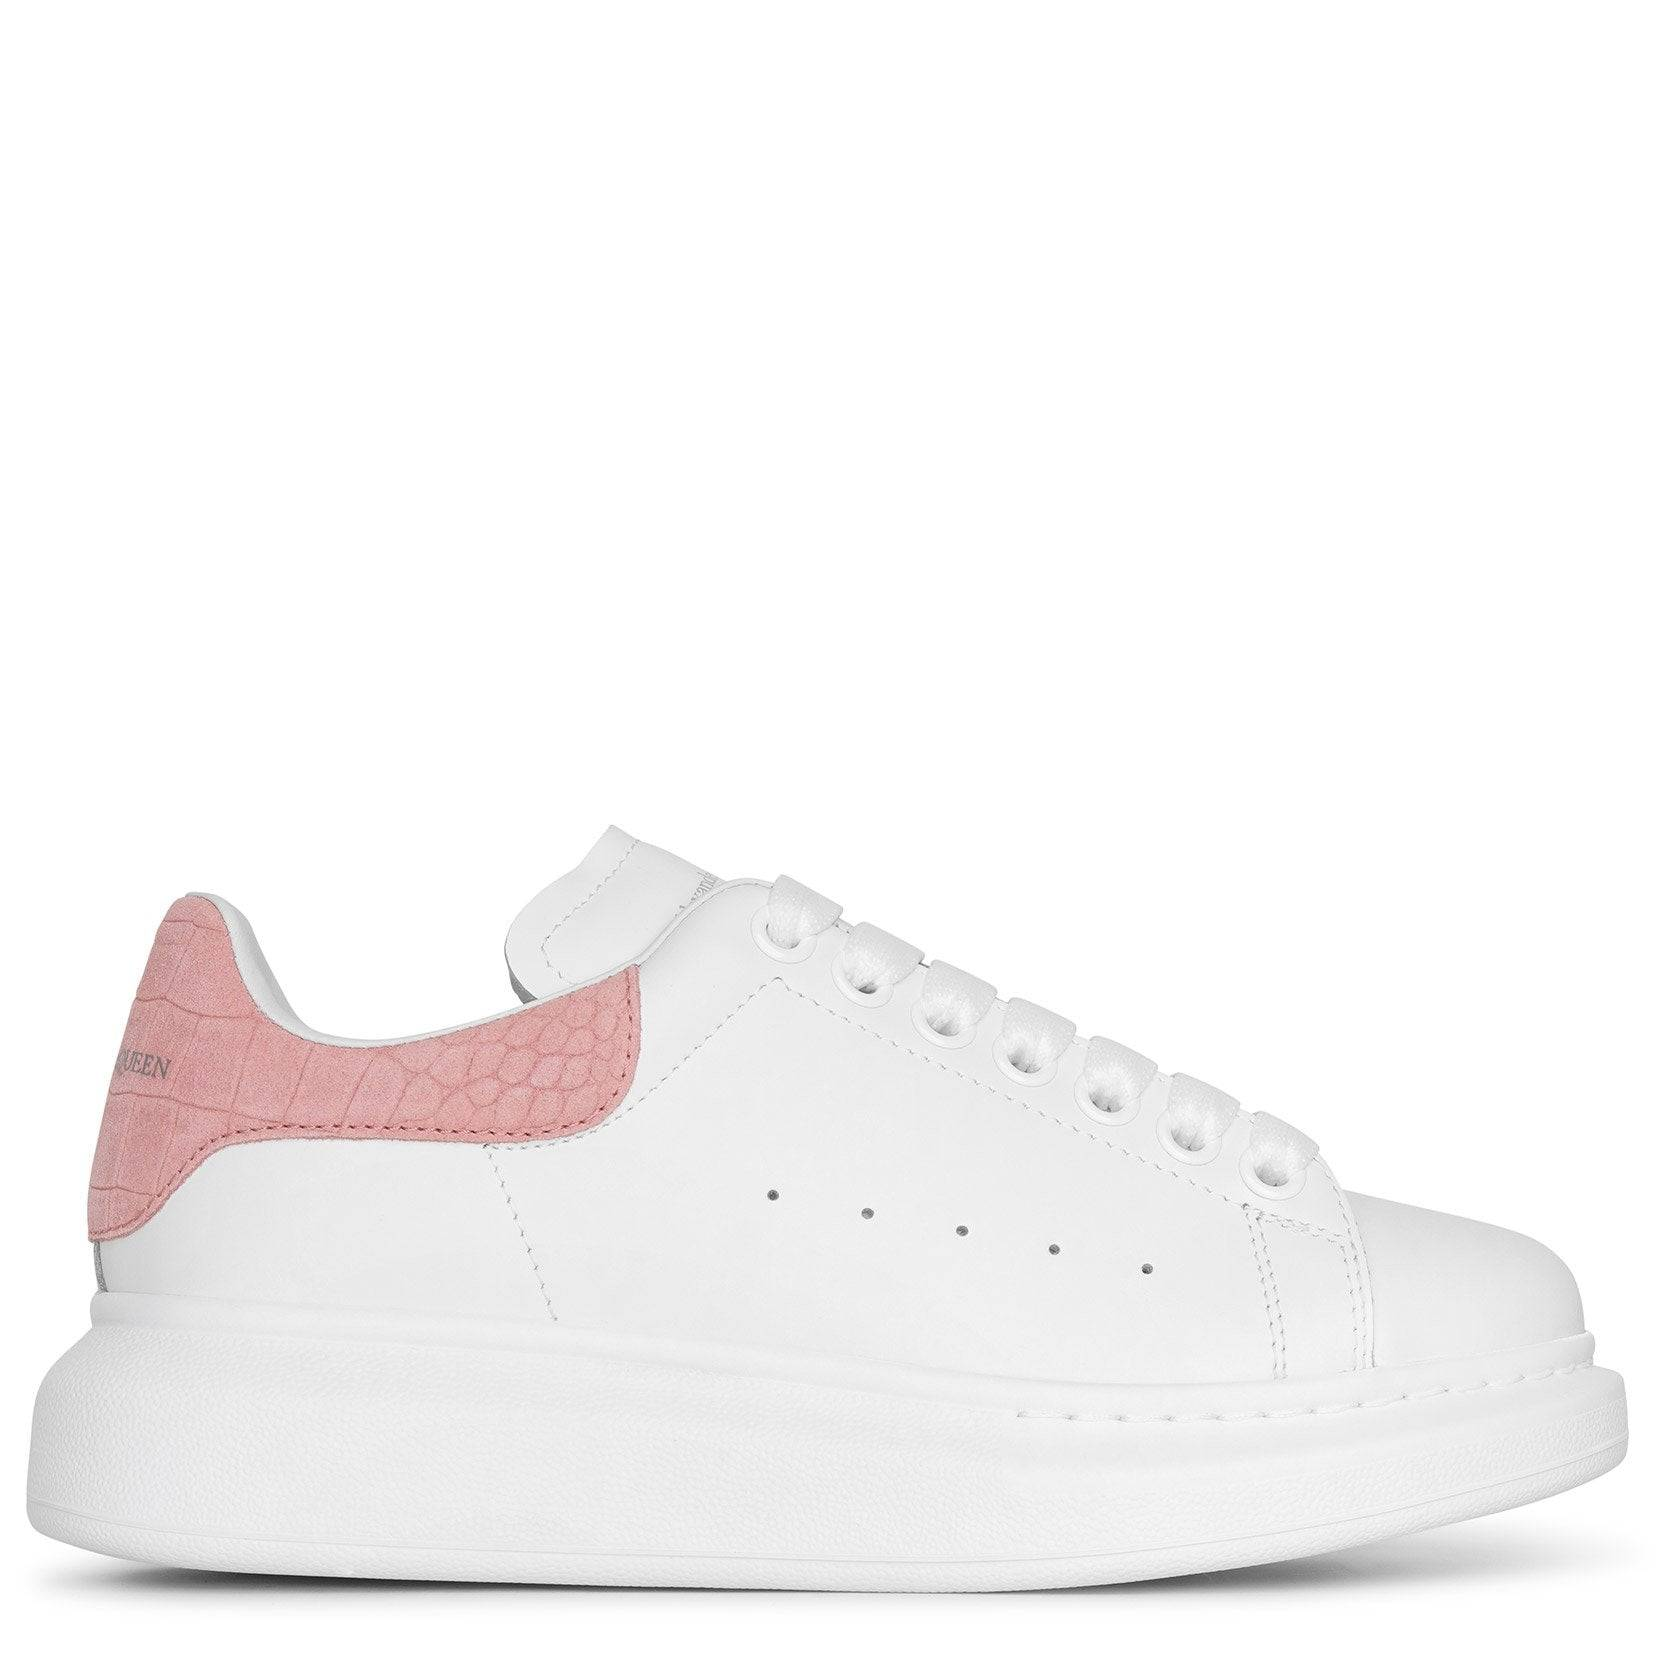 Alexander McQueen White and rose quartz classic sneakers  - white/pink - female - Size: 40